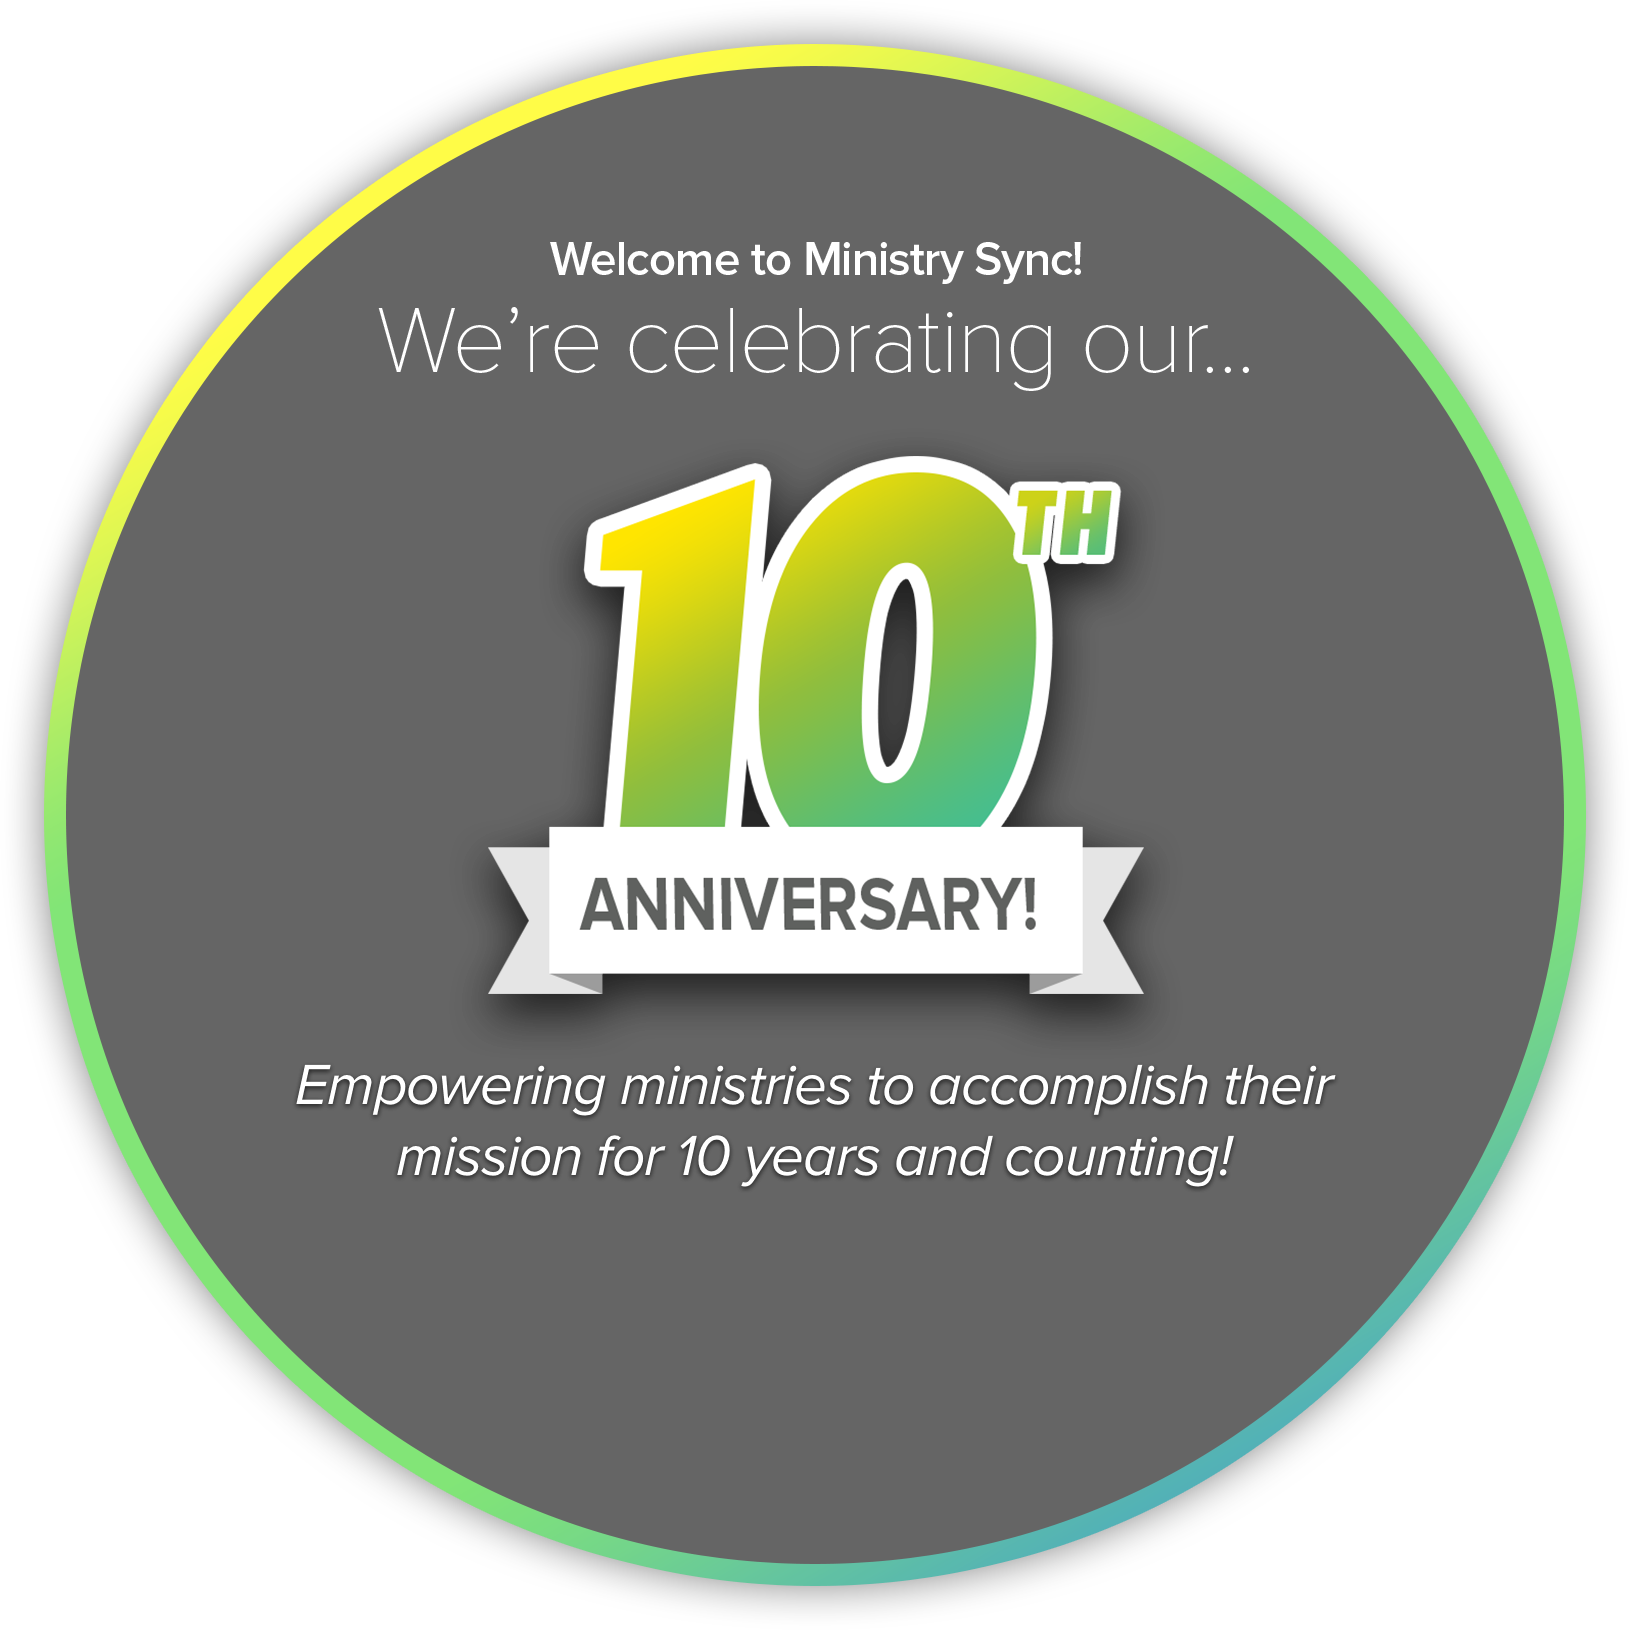 Ministry Sync – Help Us Celebrate Our 10 Year Anniversary